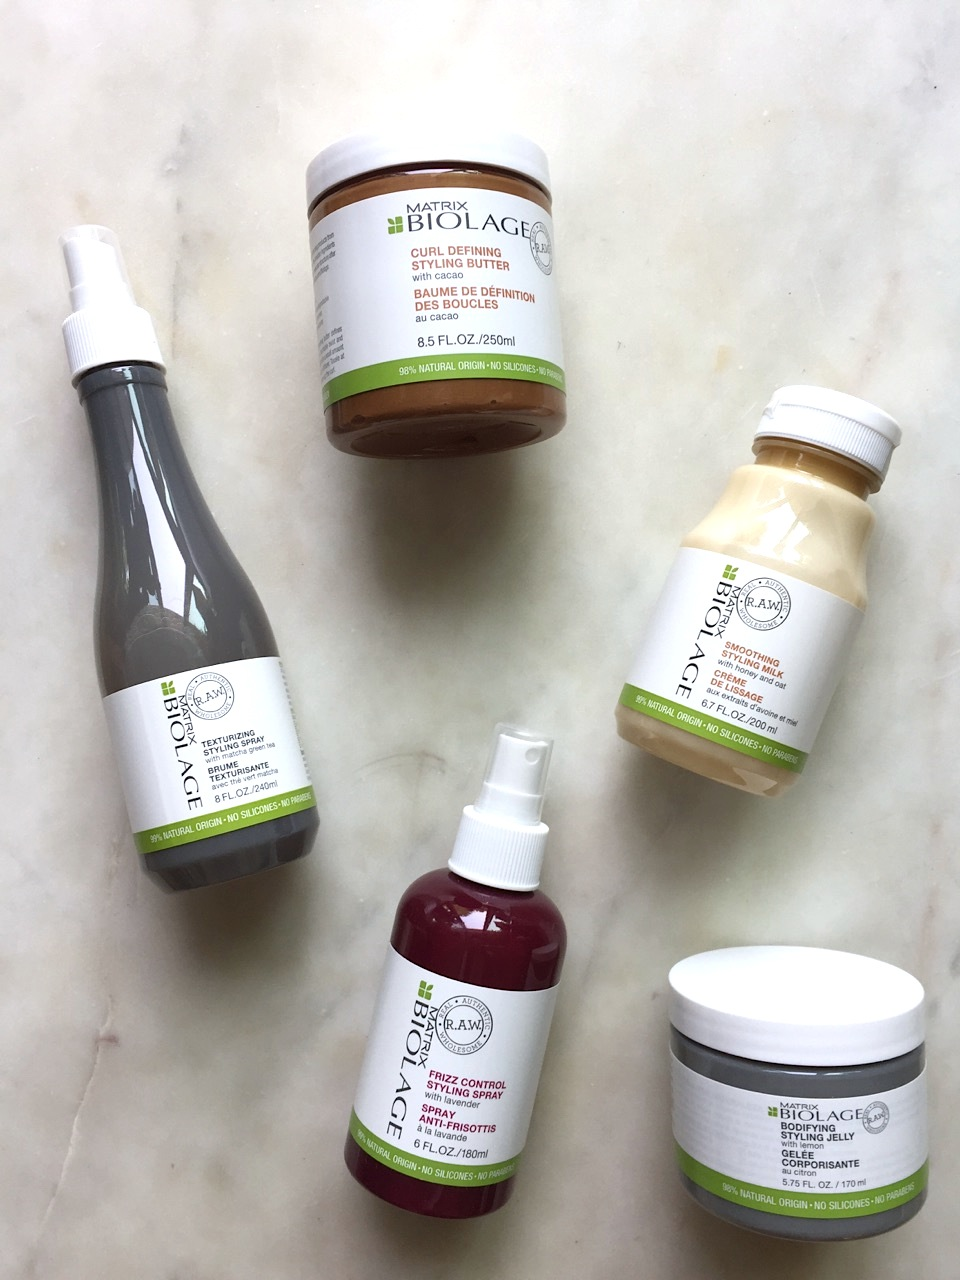 Matrix Biolage RAW Styling The Naked Touch Collection: A quick review